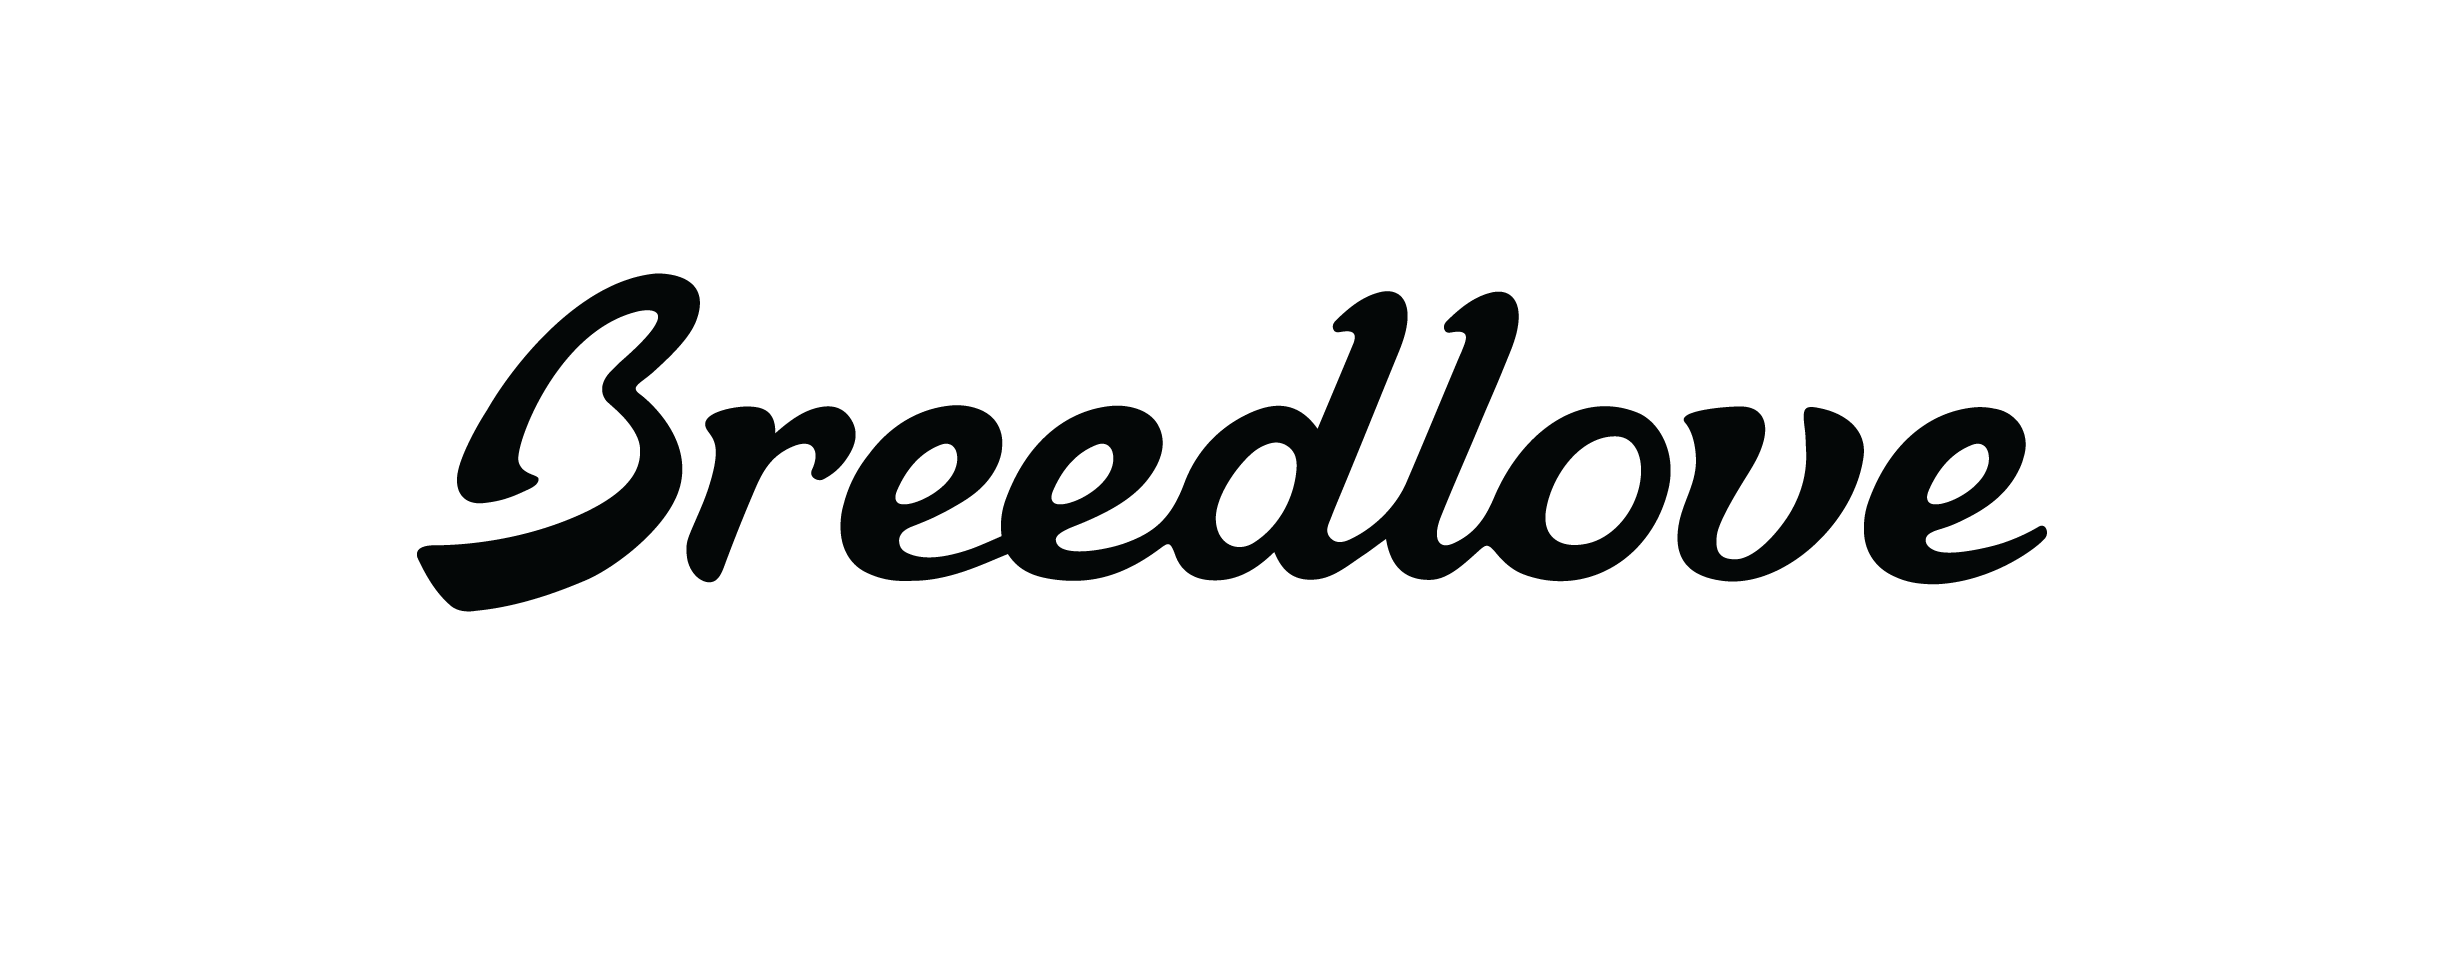 http://themuseummusic.com/wp-content/uploads/2016/02/Breedlove-logo-final-1.png